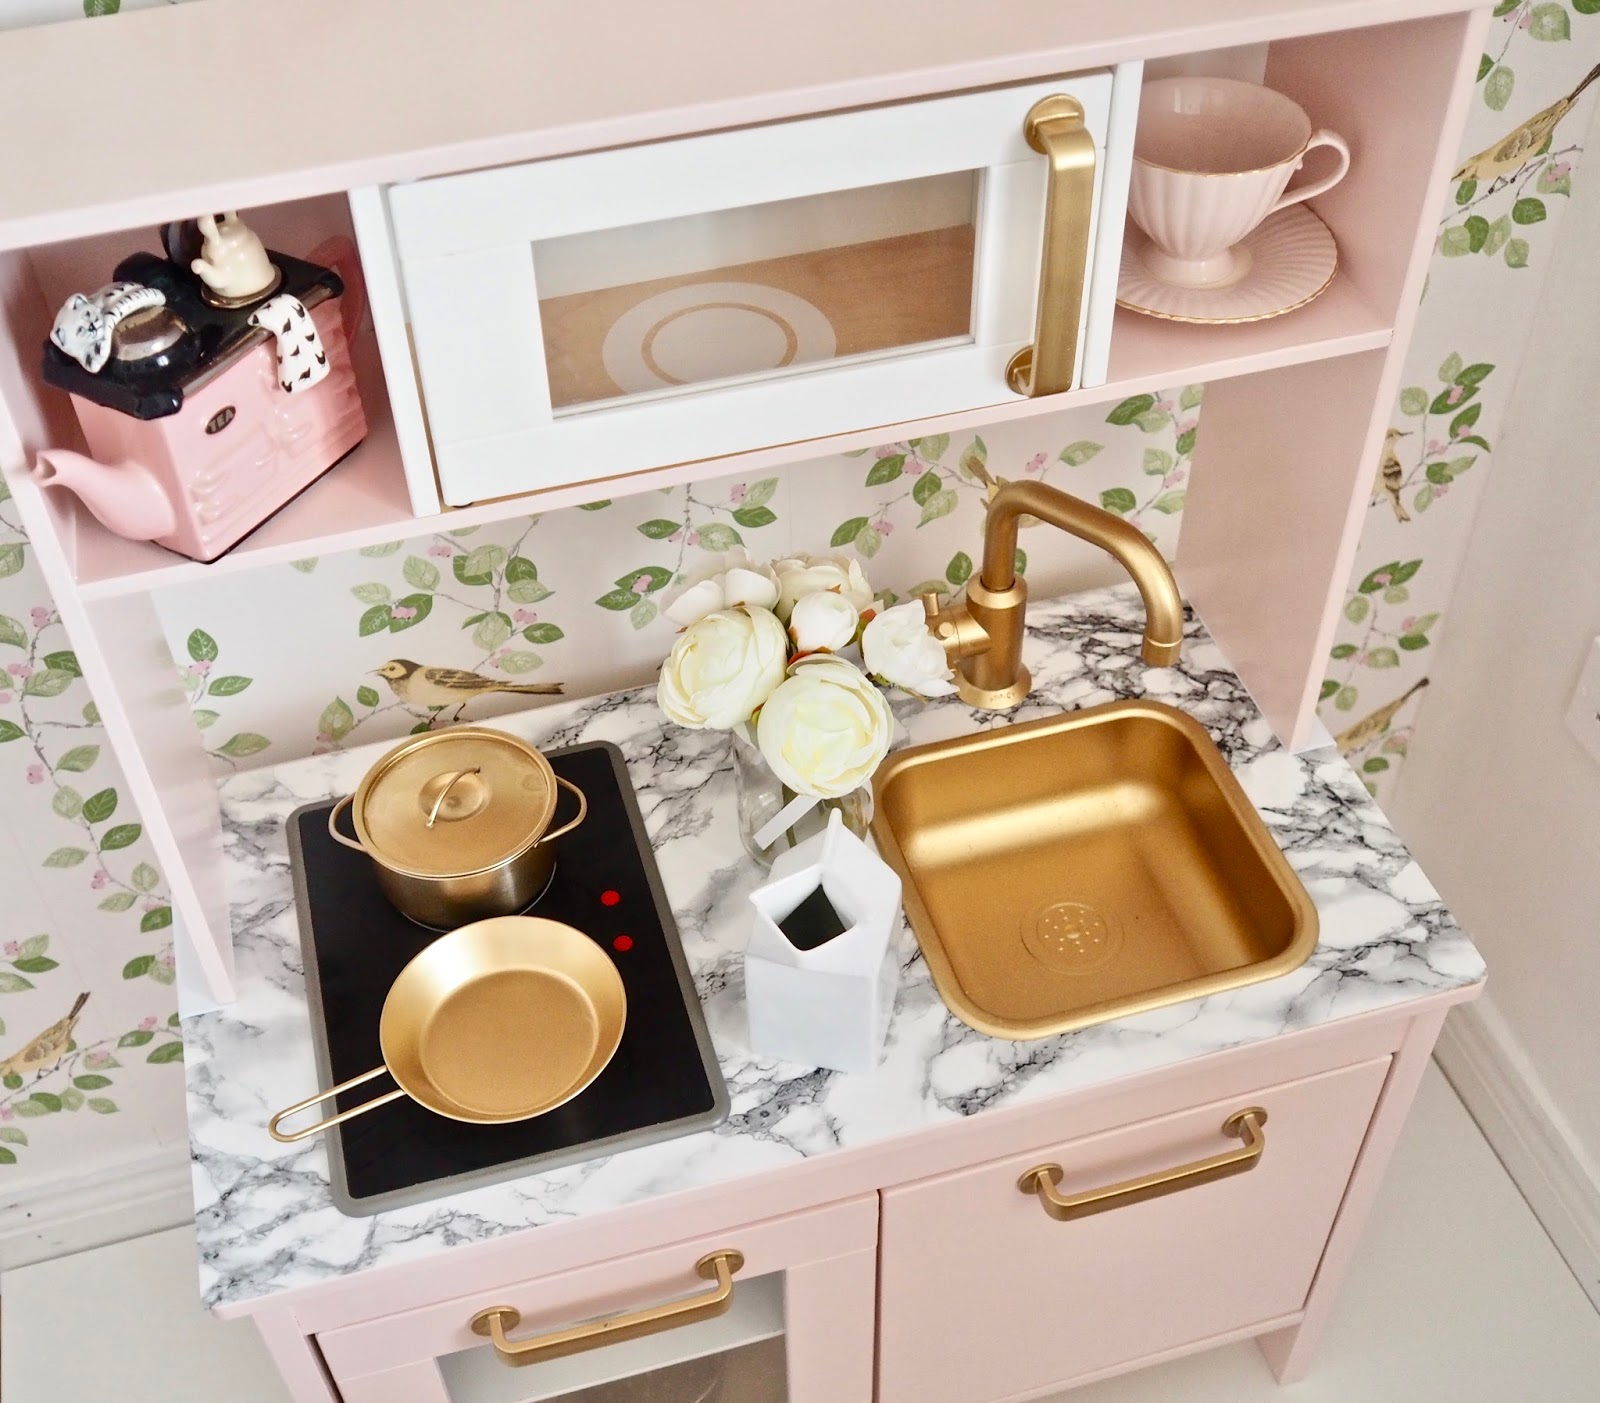 Kid Kitchens Long Kitchen Island With Seating Ikea Duktig Play Makeover Dainty Dress Diaries I Have Put Together A Youtube Video Also On How Transformed My Mini Will Make Sure To Link The At Bottom Of This Post